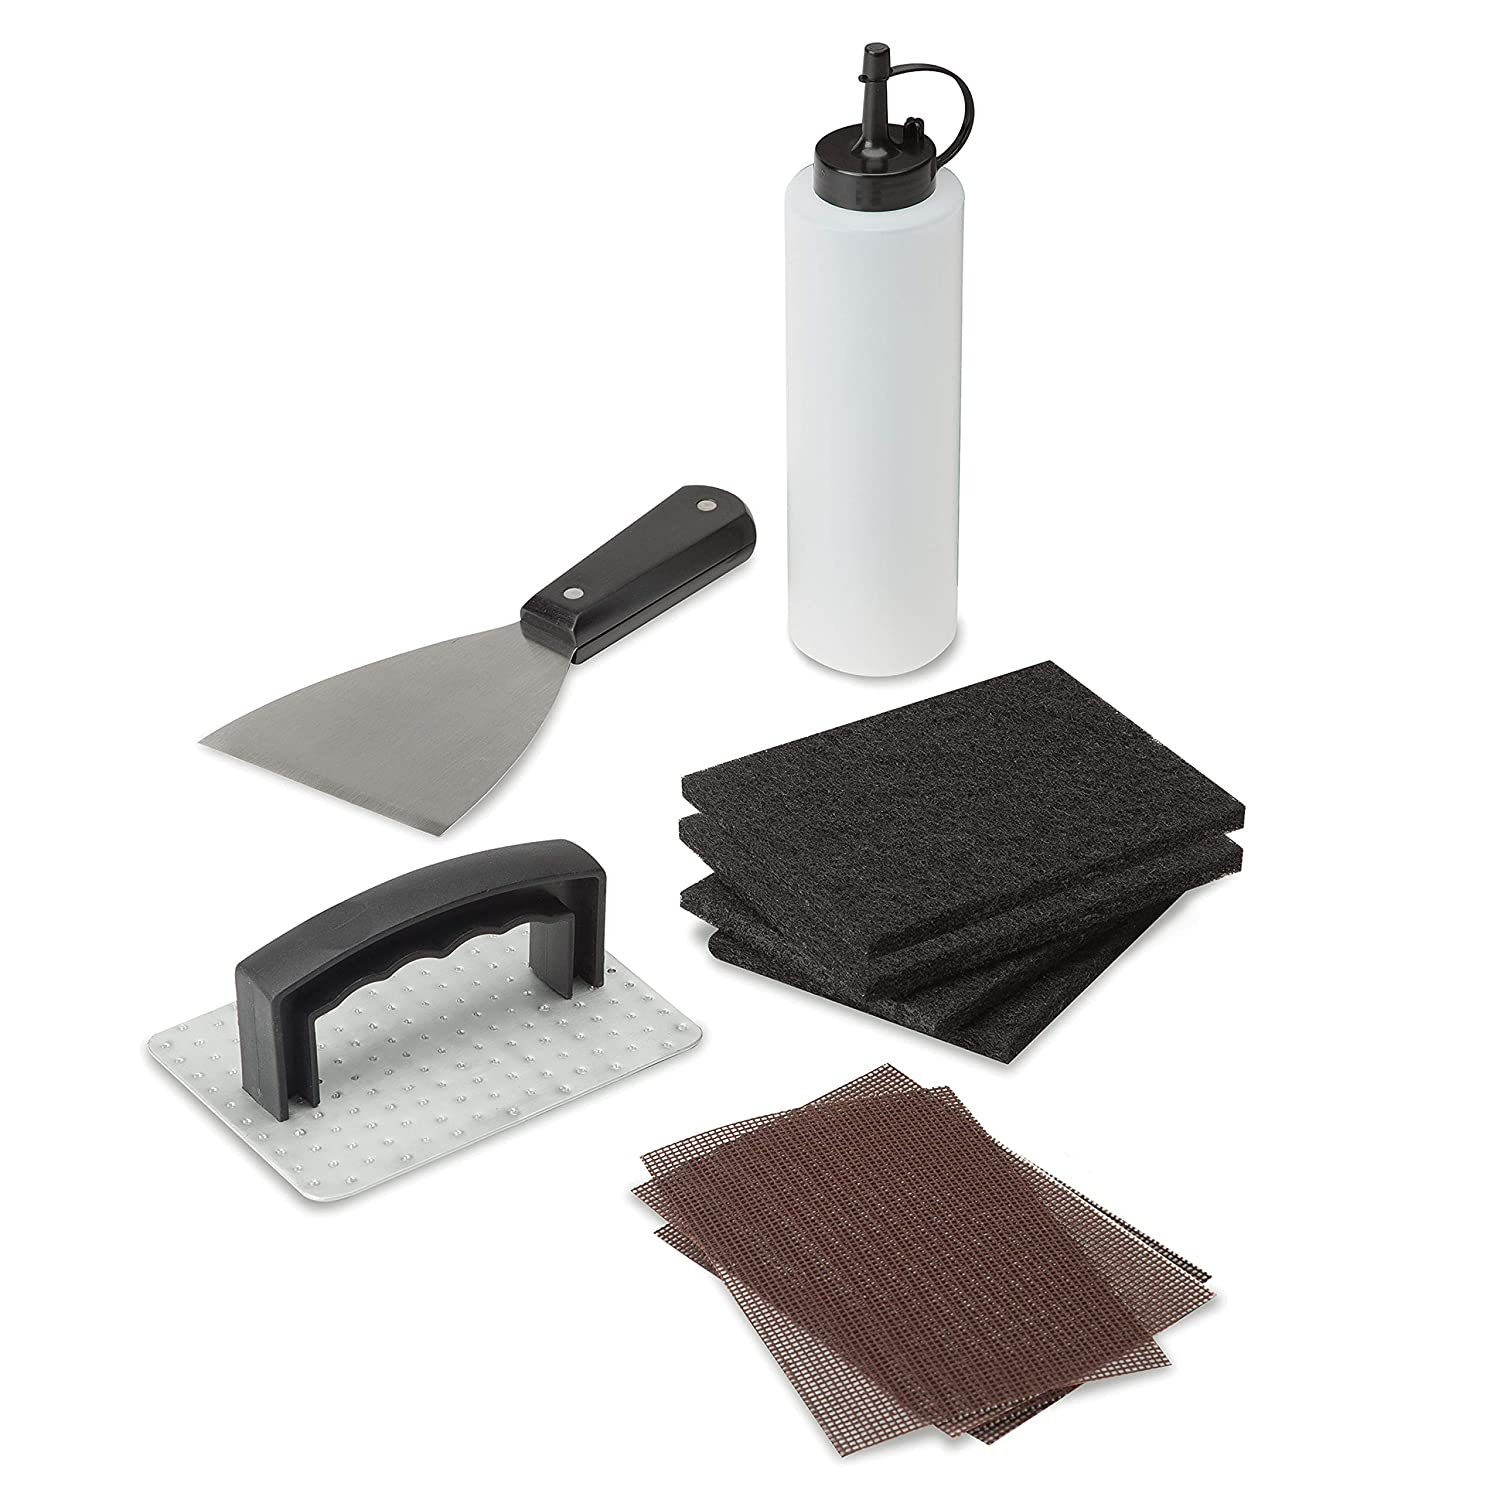 Cuisinart CCK-358 10 Piece Griddle Cleaning Kit, Silver/Black